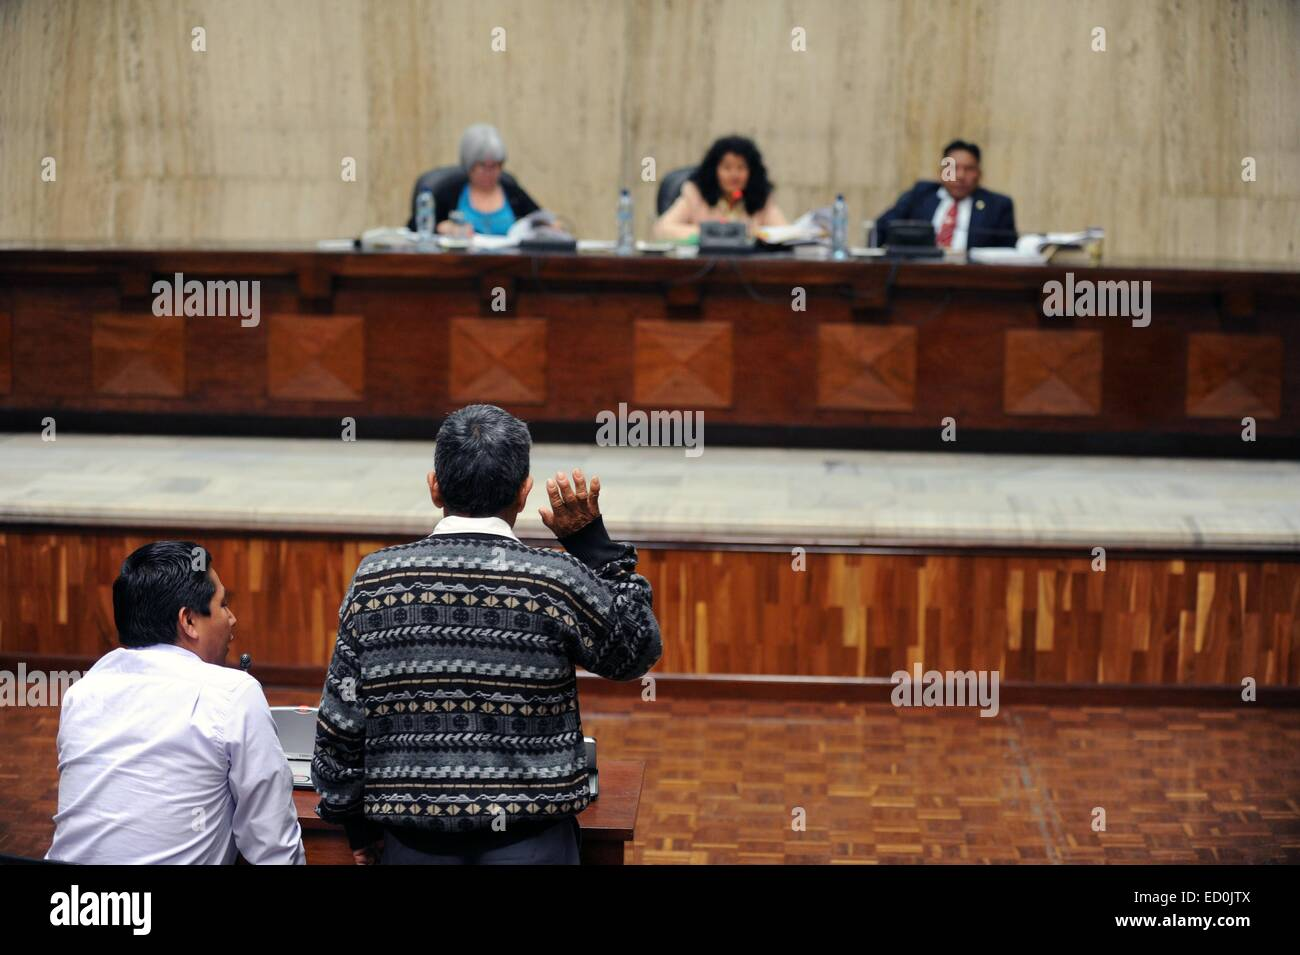 A Maya Ixil man swears during RIos Montt genocide trial In the Supreme Court of Justice Guatemala CIty March 19, - Stock Image